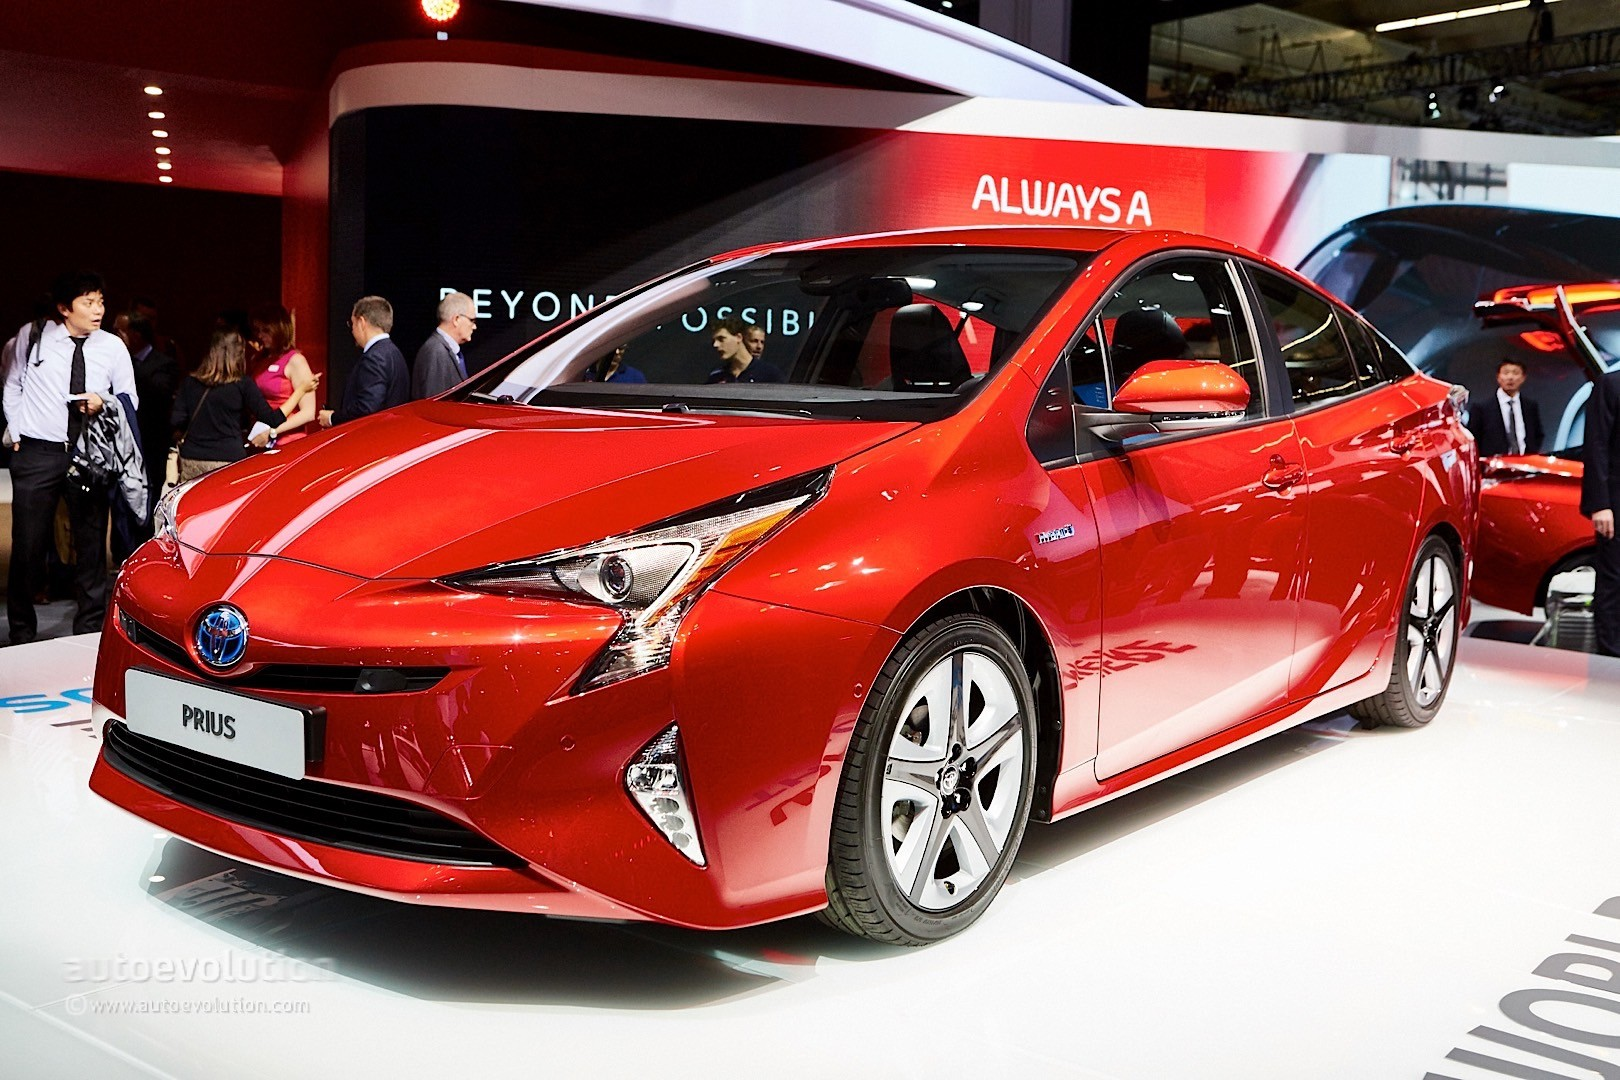 2016 Toyota Prius Pricing in the UK Starts at £23,295 - autoevolution